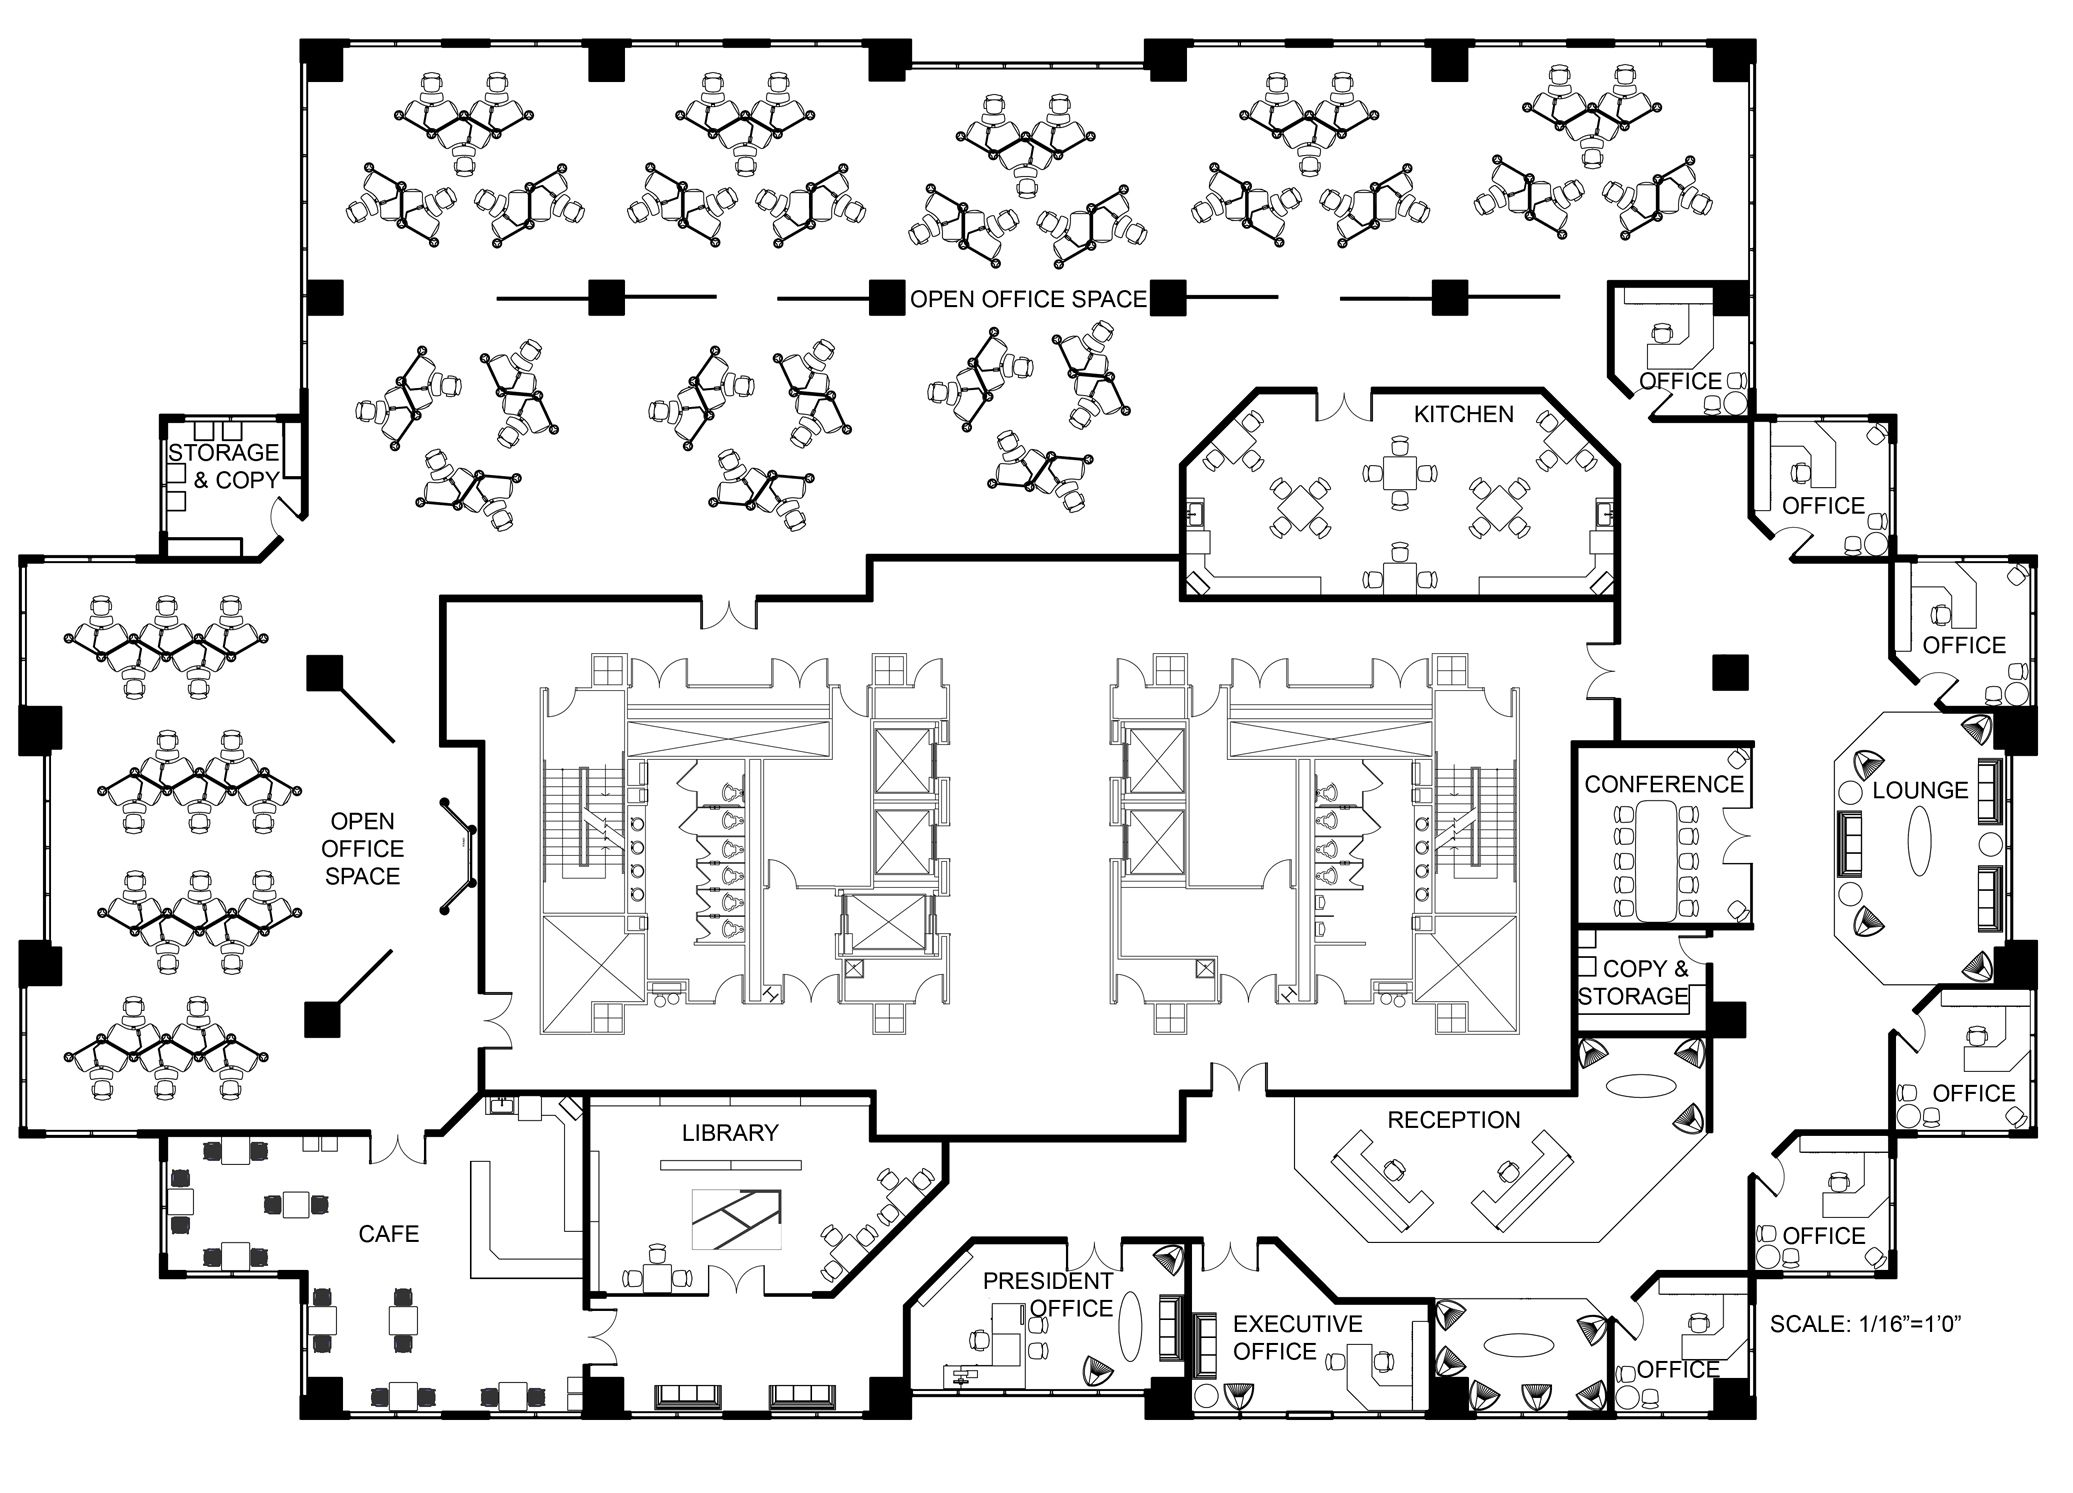 Original 314577 2073 1493 for Office design floor plan